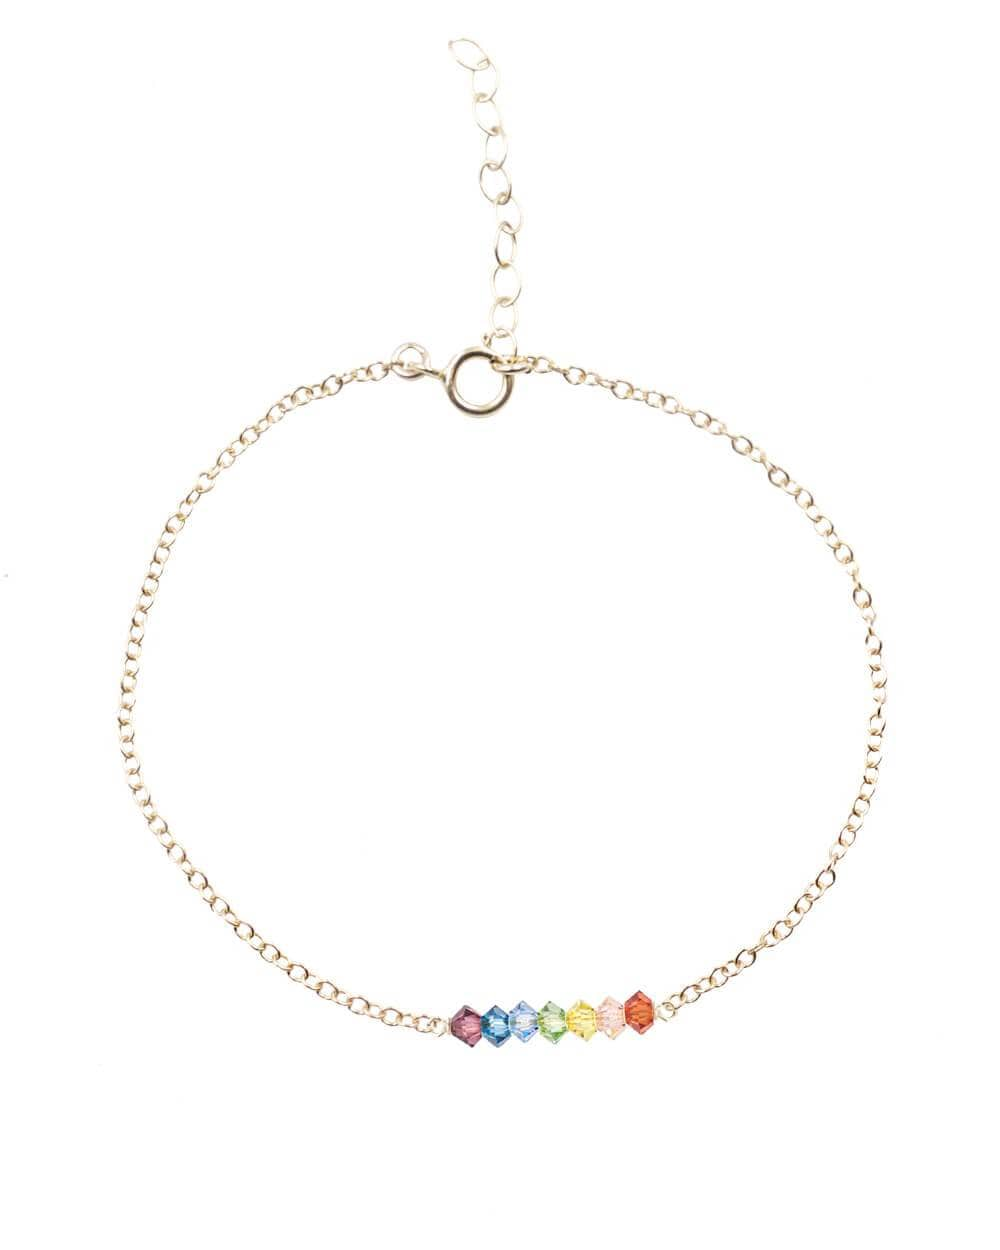 f364cd737cb23 The 7 Chakras Bracelet